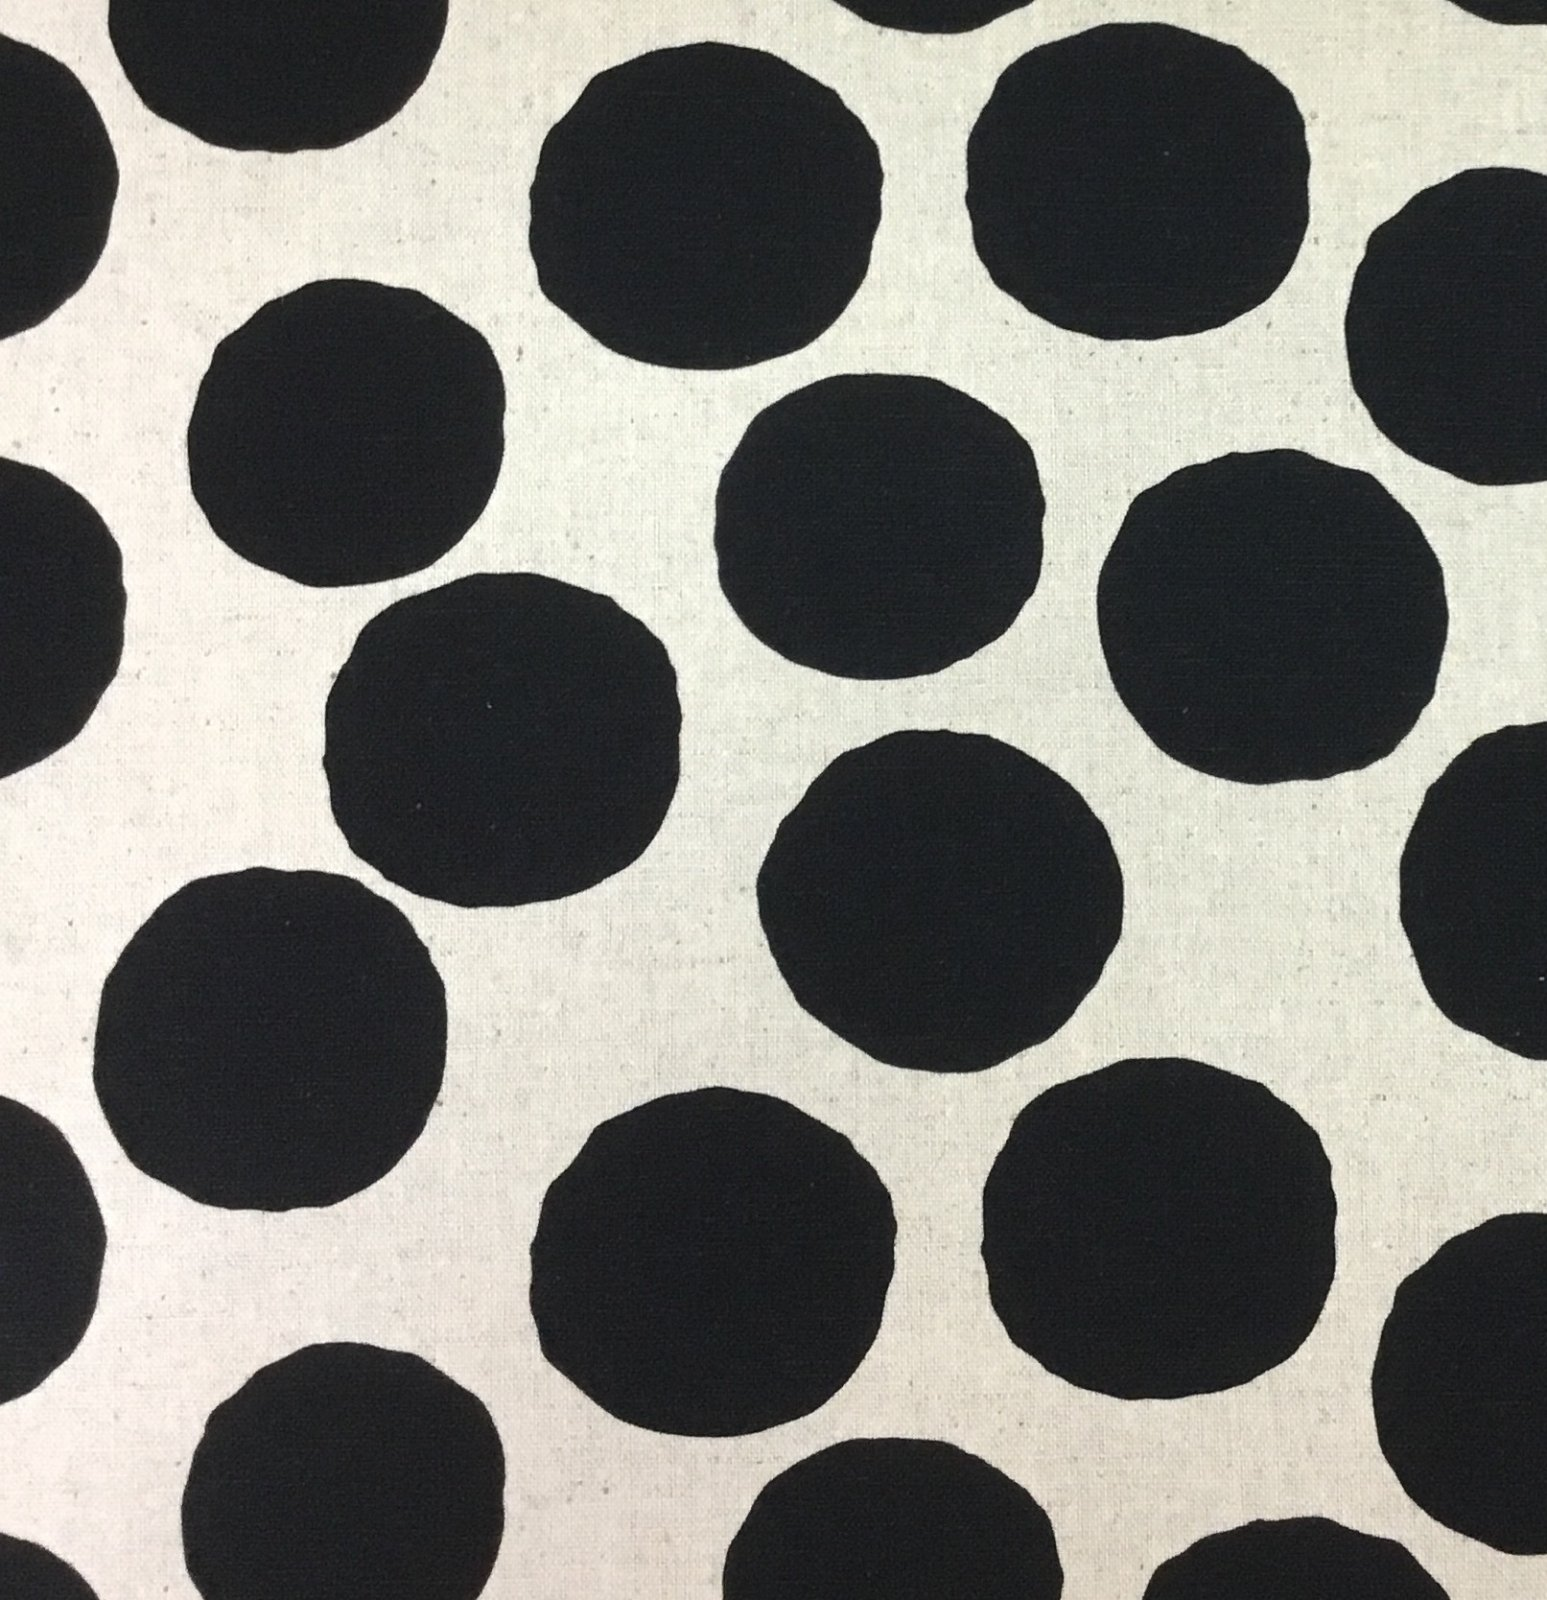 Large Black Dots on Linen - AP91908-1A